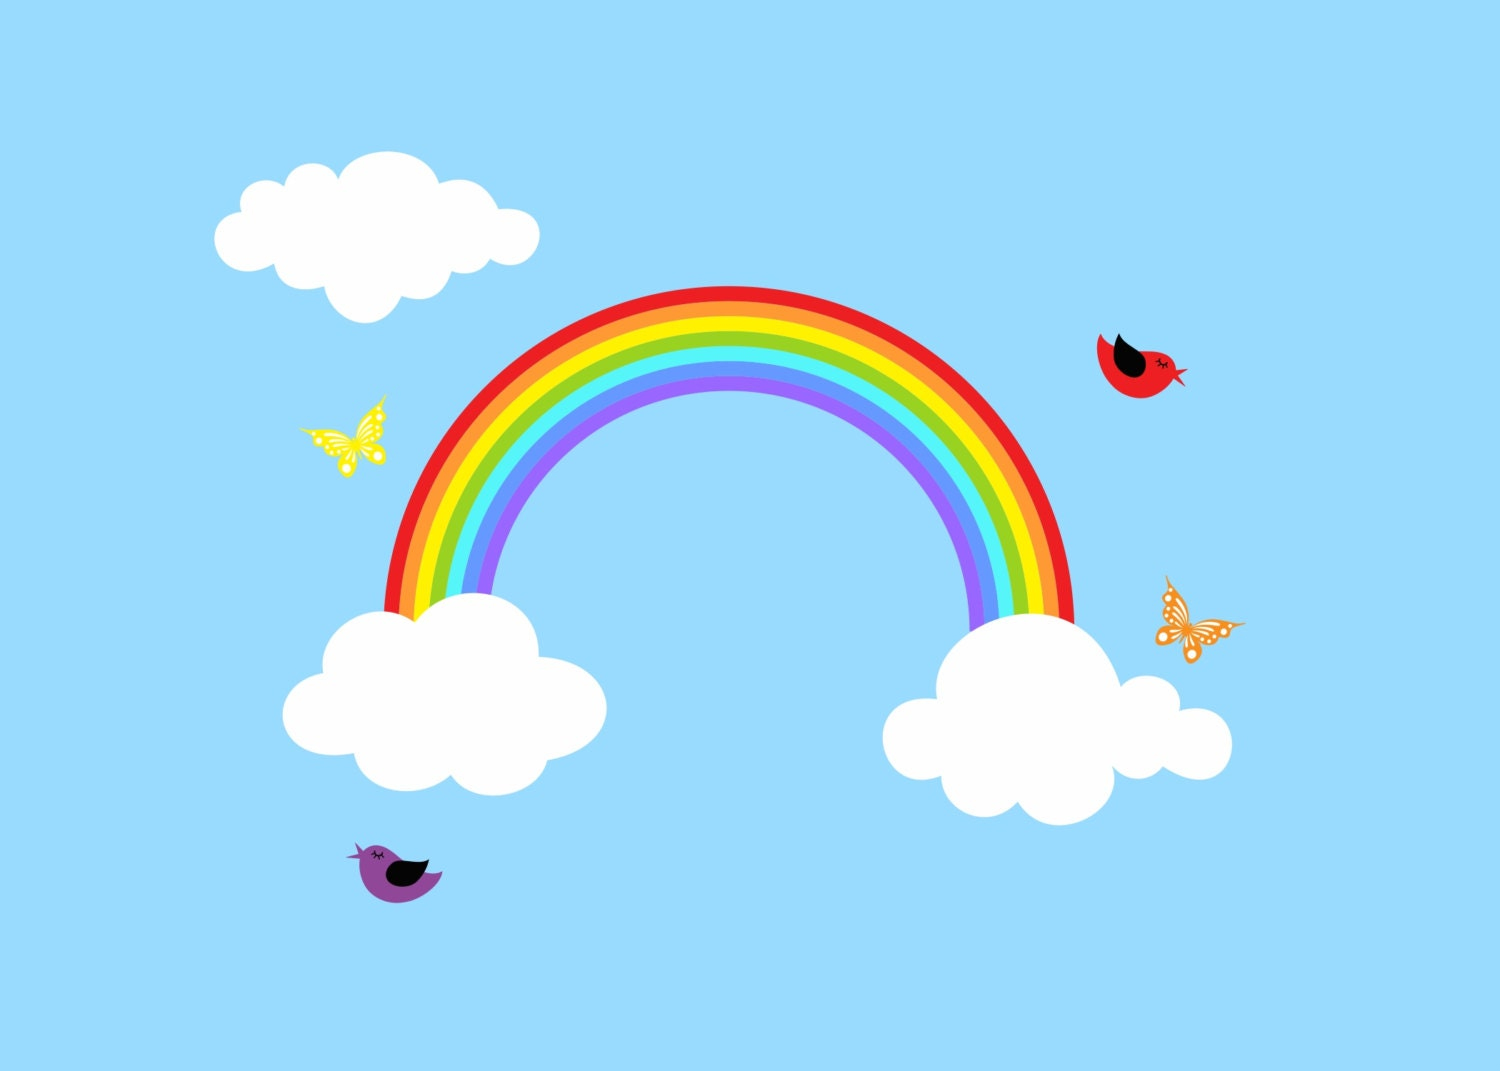 Baby Wall Sticker Rainbow Decal Reusable Rainbow Wall Decal Children Wall Decal